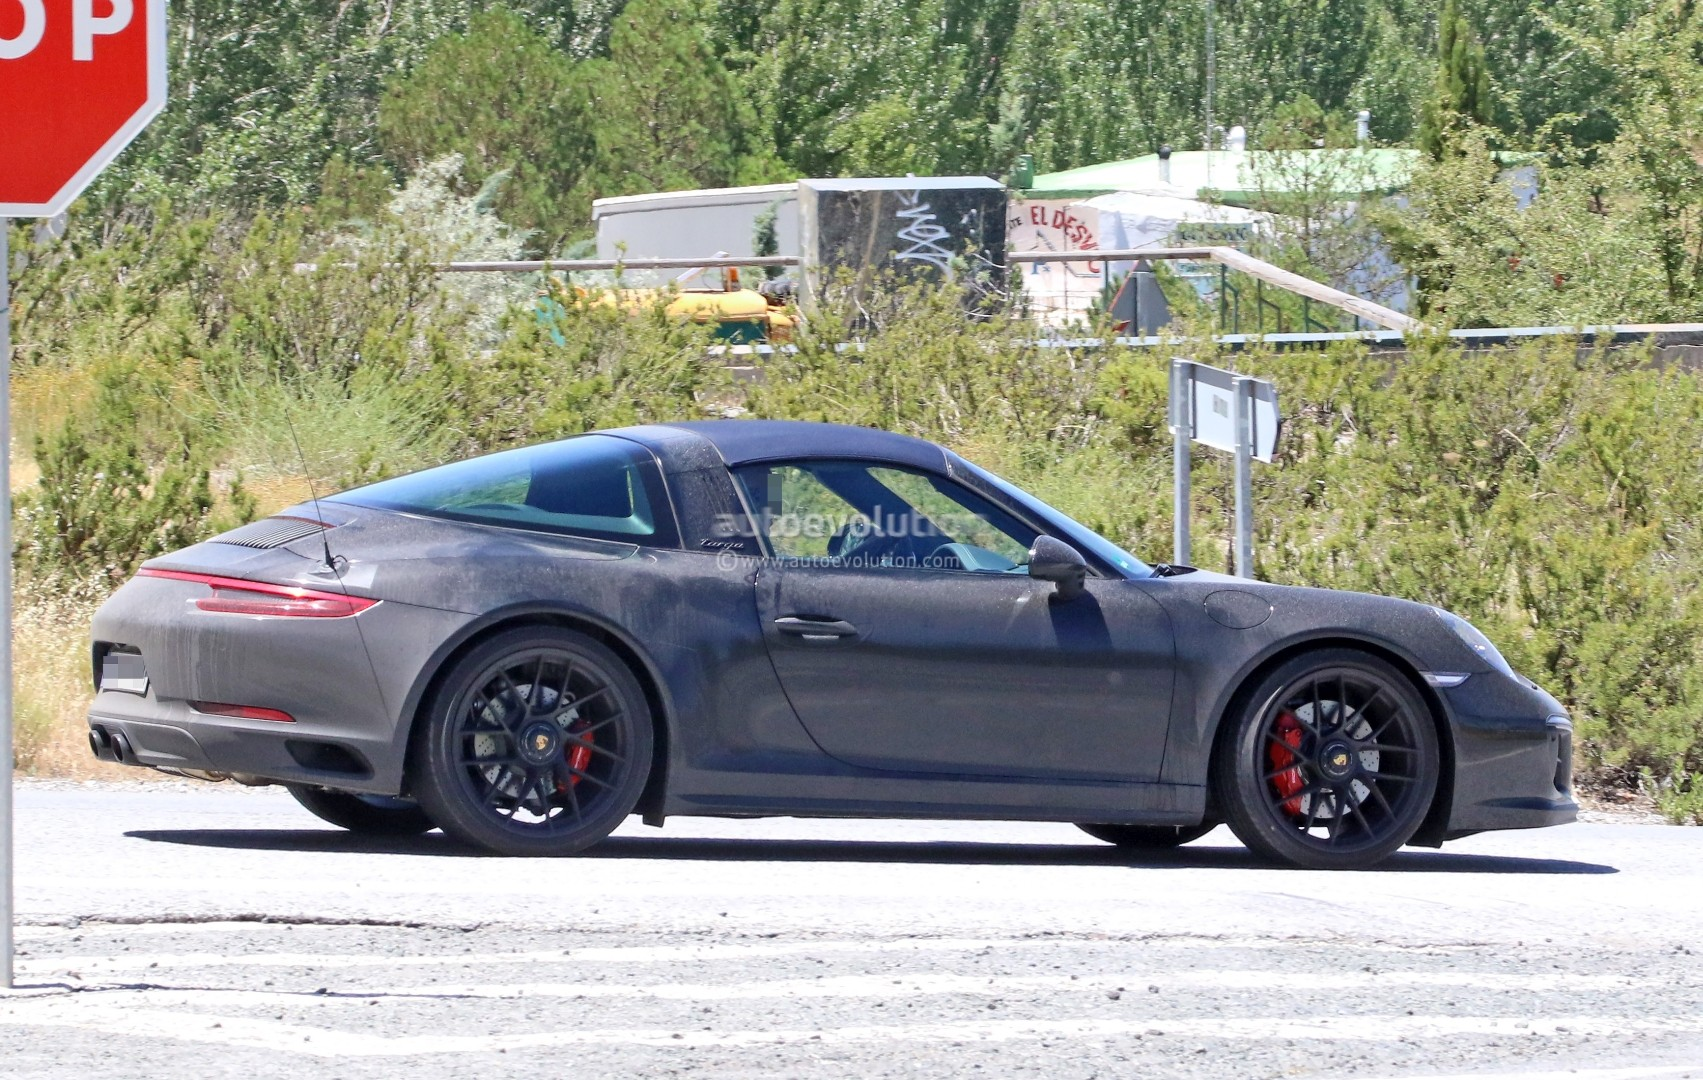 2017 Porsche 911 Targa GTS Revealed in Spyshots with Black Roof Bar on 2017 porsche boxster, 2017 porsche gt3, 2017 ford gt targa, 2017 porsche cayman, 2017 porsche cayenne,